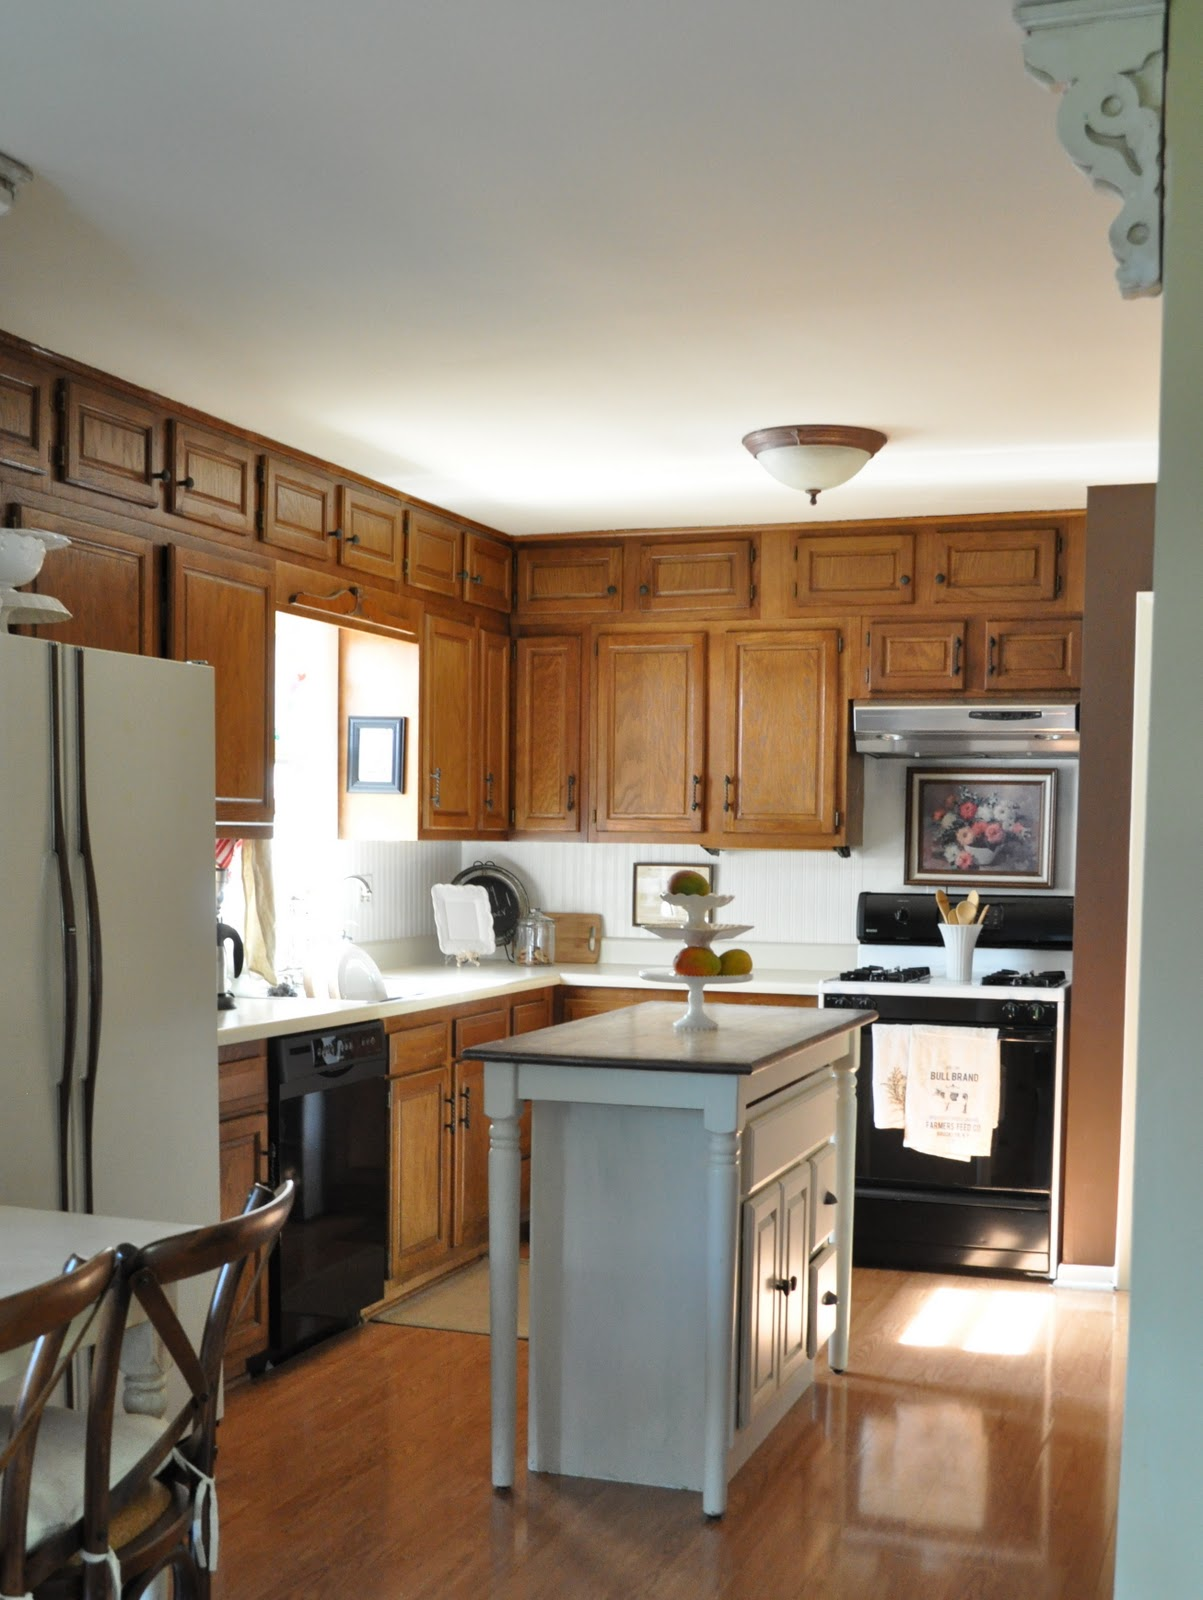 Kitchen Remodel: My Complete Kitchen Remodel Story For About $12,000